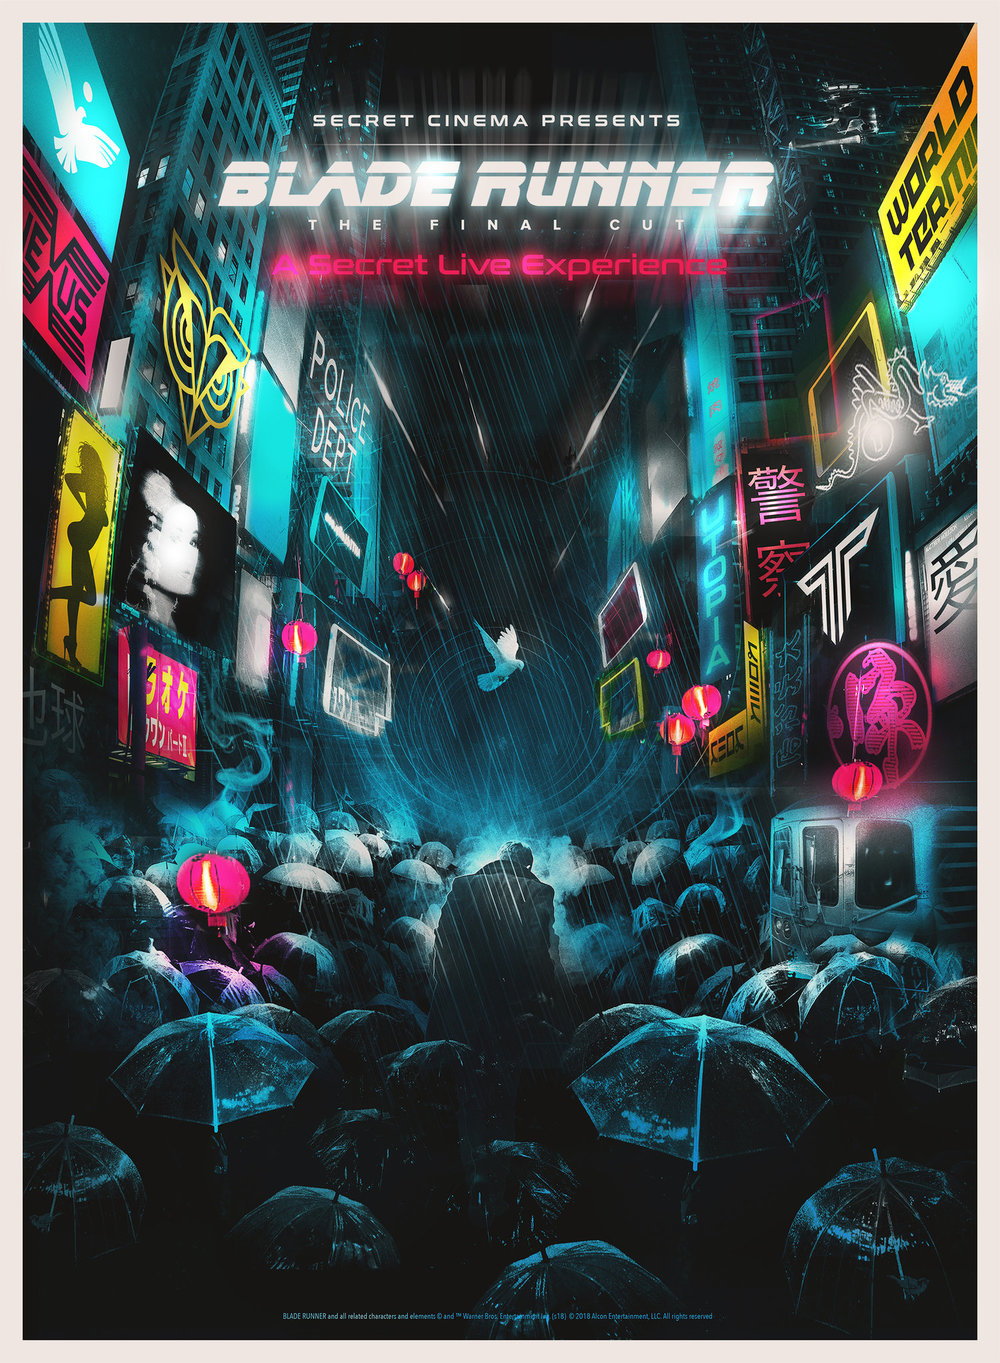 Secret Cinema Presents Blade Runner